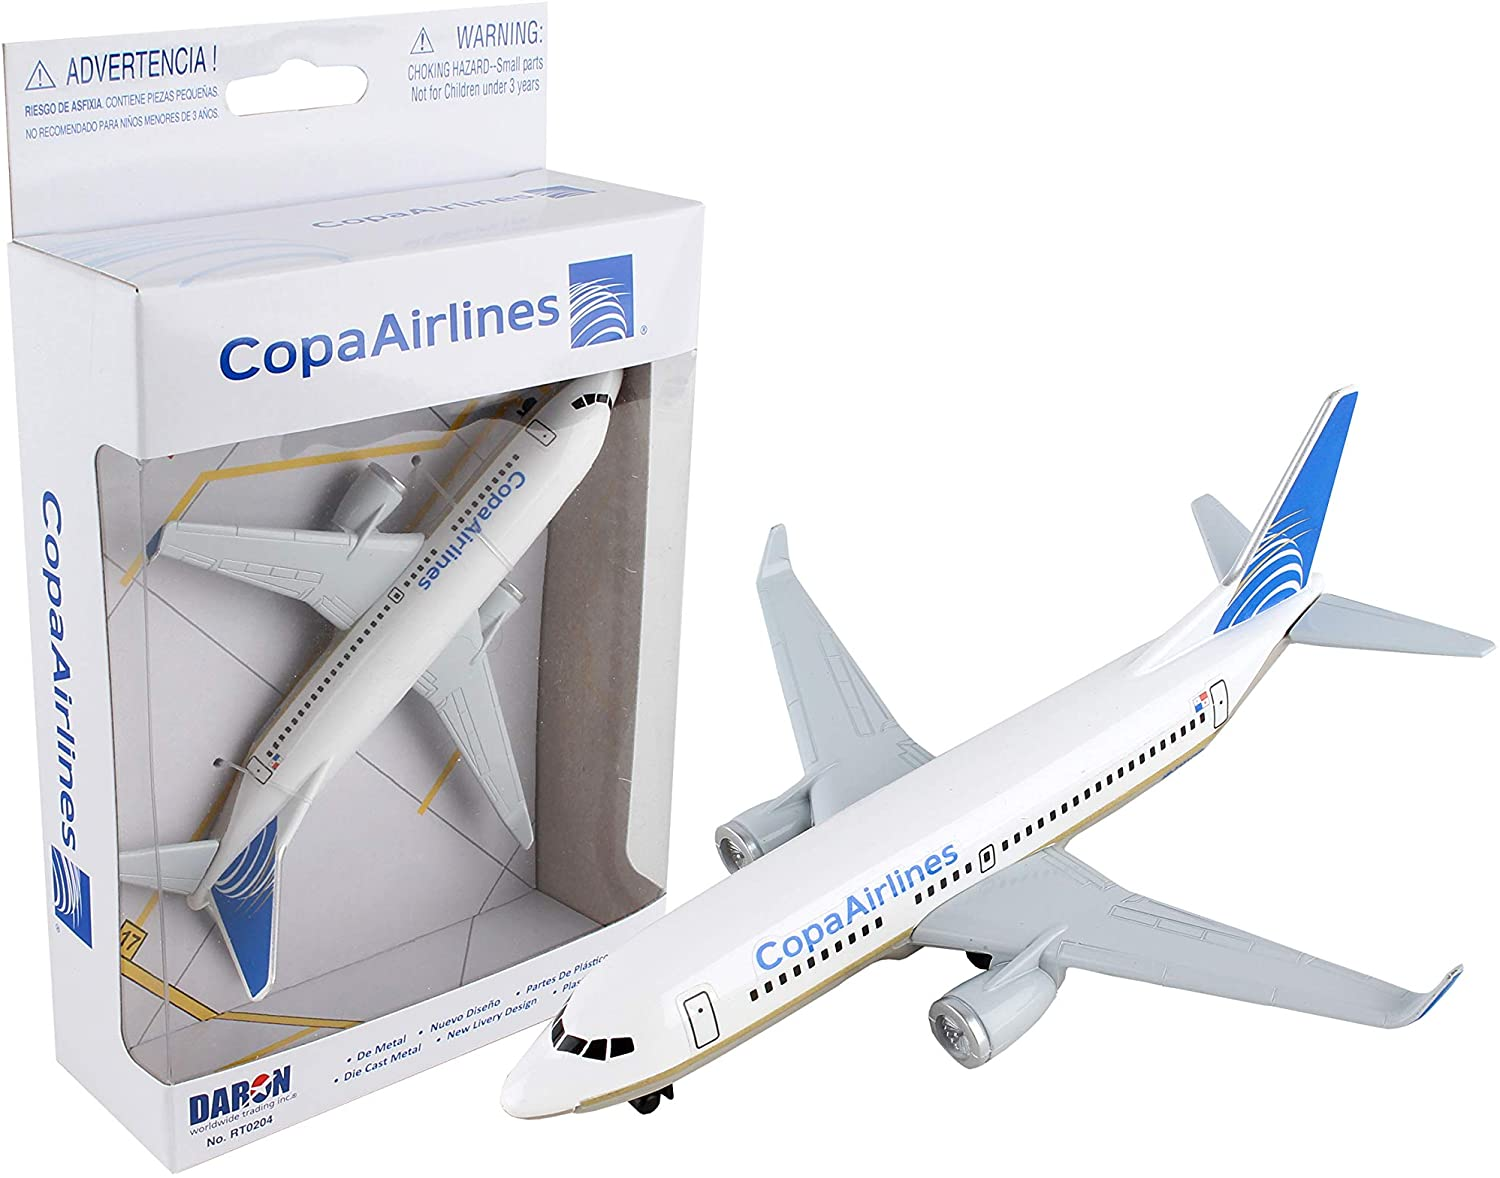 DARON COPA AIRLINES 0204 and Frontier Airline 7594-1 Airplane Models Set